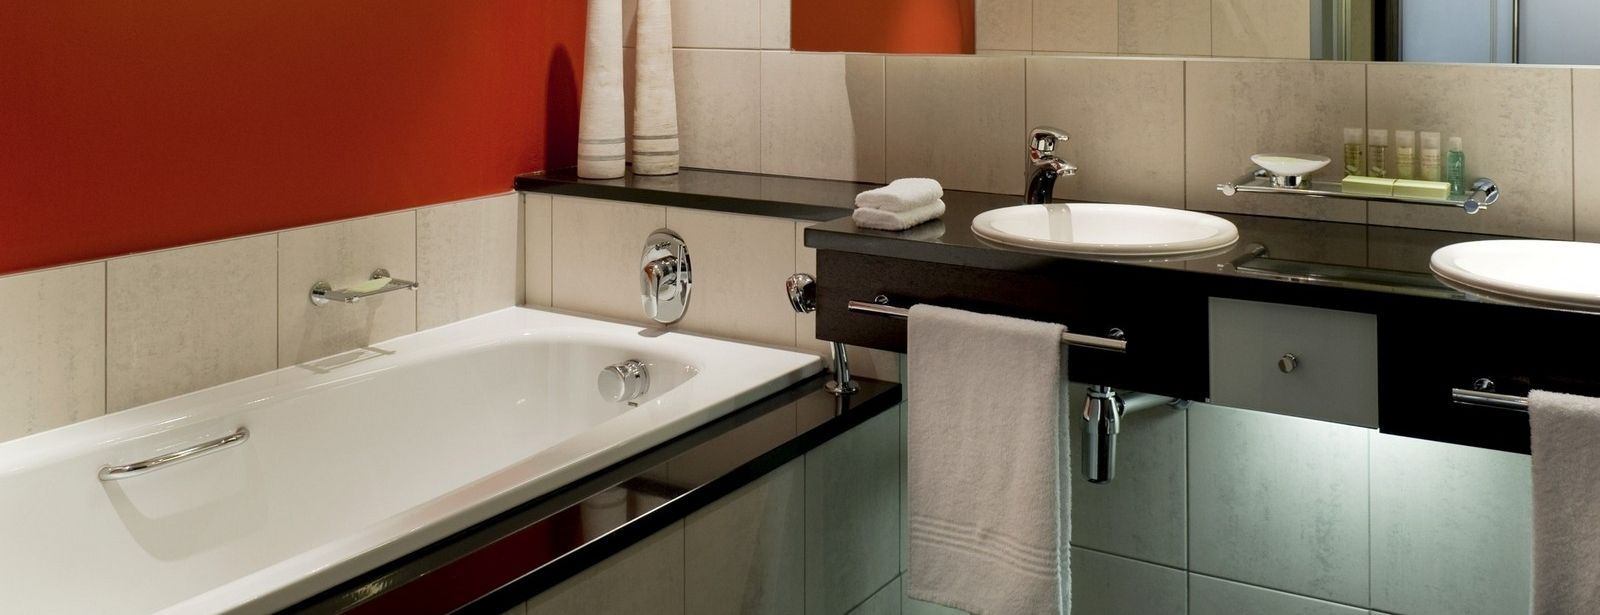 Westin Cape Town Deluxe Room bathroom with bath tub